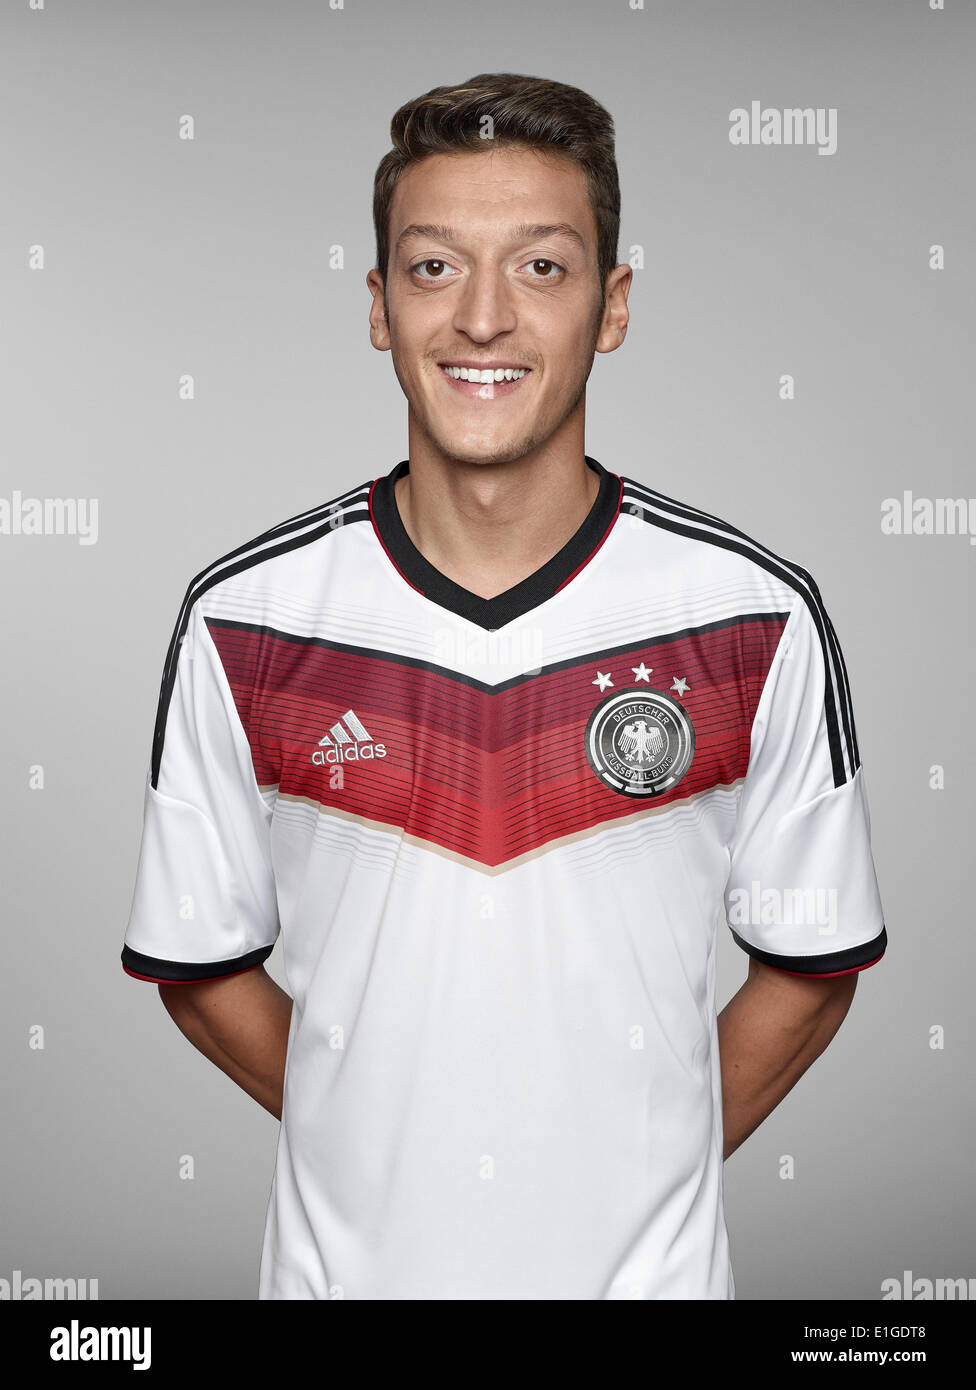 FIFA World Cup 2014 - photocall Team Germany, 24 May 2014 in Passeier, Italy: Mesut Oezil. Photo credit: Bongarts/Getty Images/German Football Association/dpa (editorial use only) - Stock Image